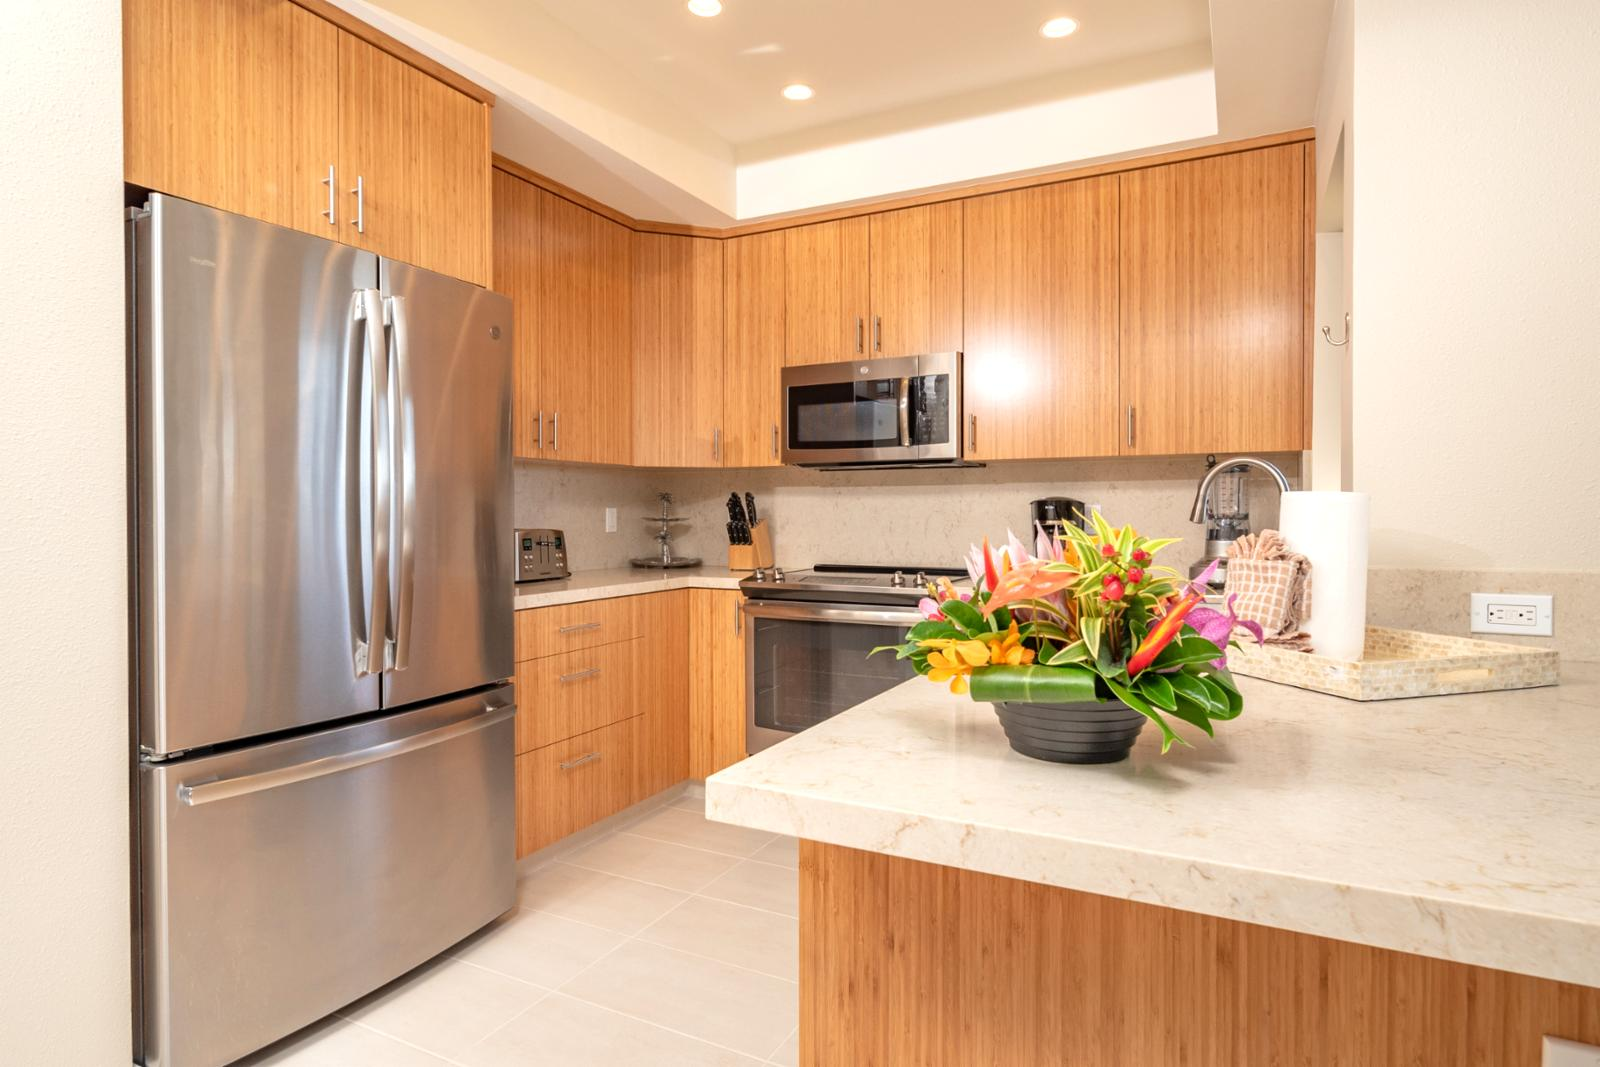 Stainless appliances throughout